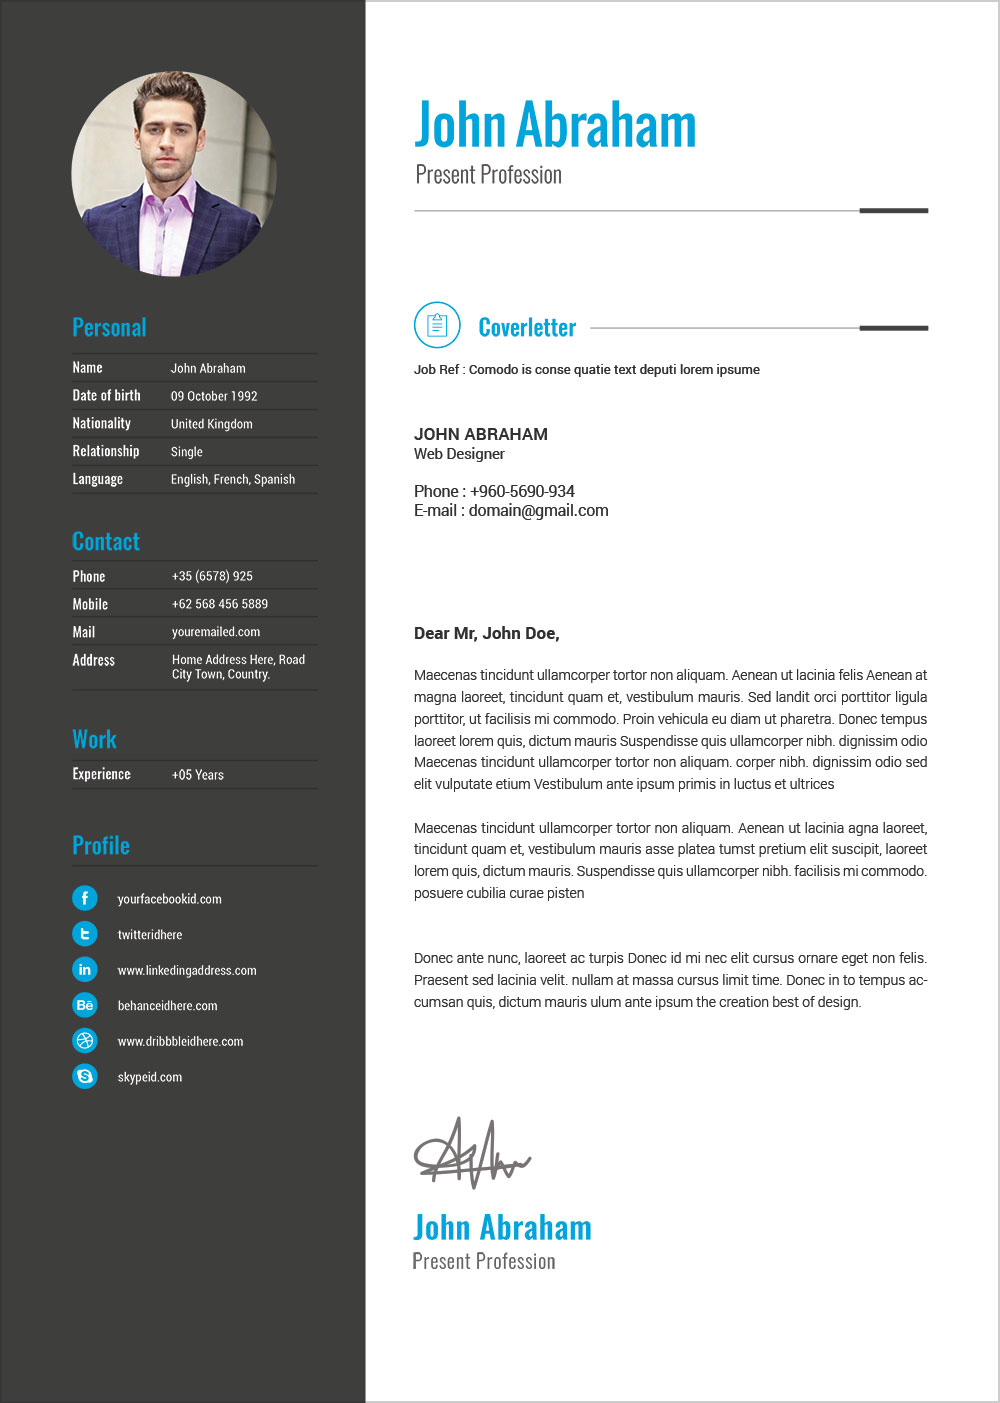 Cv Templates Docx Download (7) TEMPLATES EXAMPLE